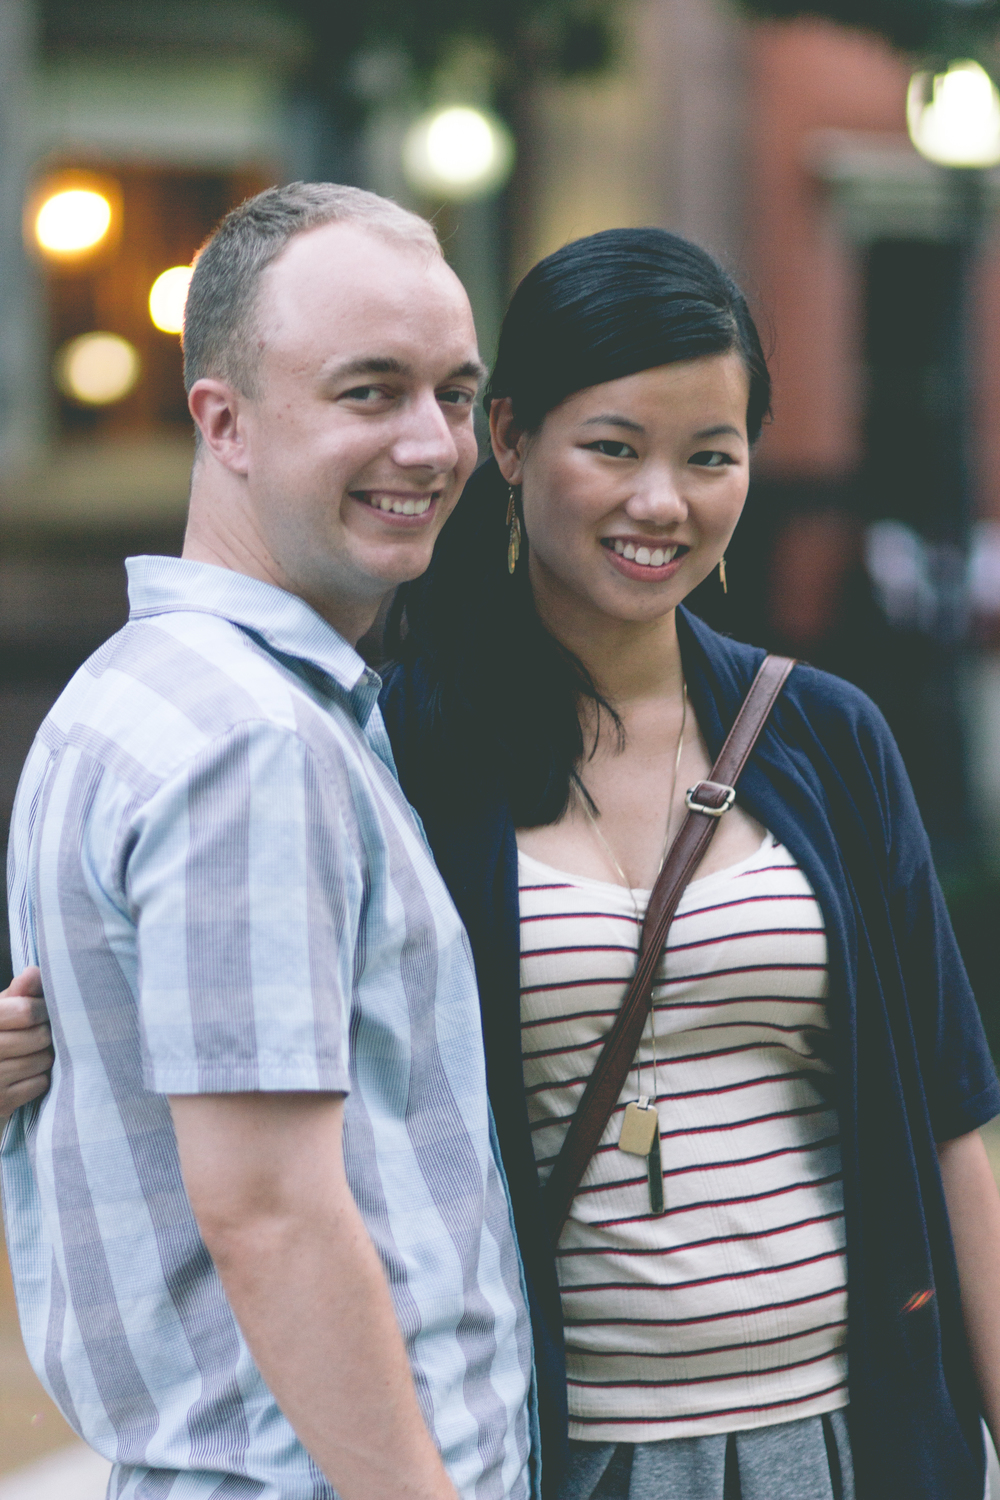 Baltimore_Christine_Jeff_Engagement_Photography-29.jpg